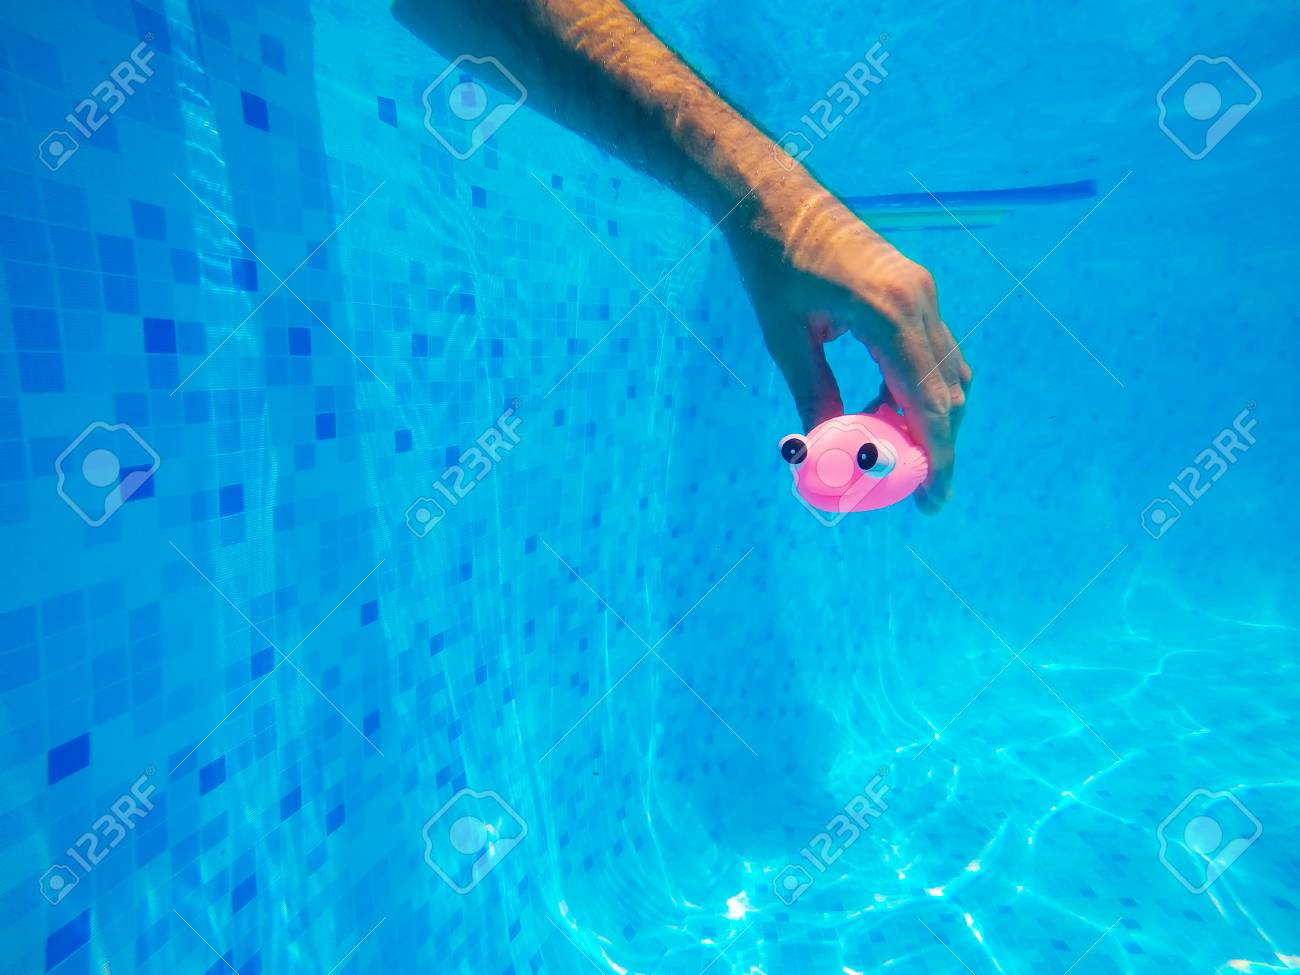 Man playing with generic rubber fish toy in swimming pool, summertime..